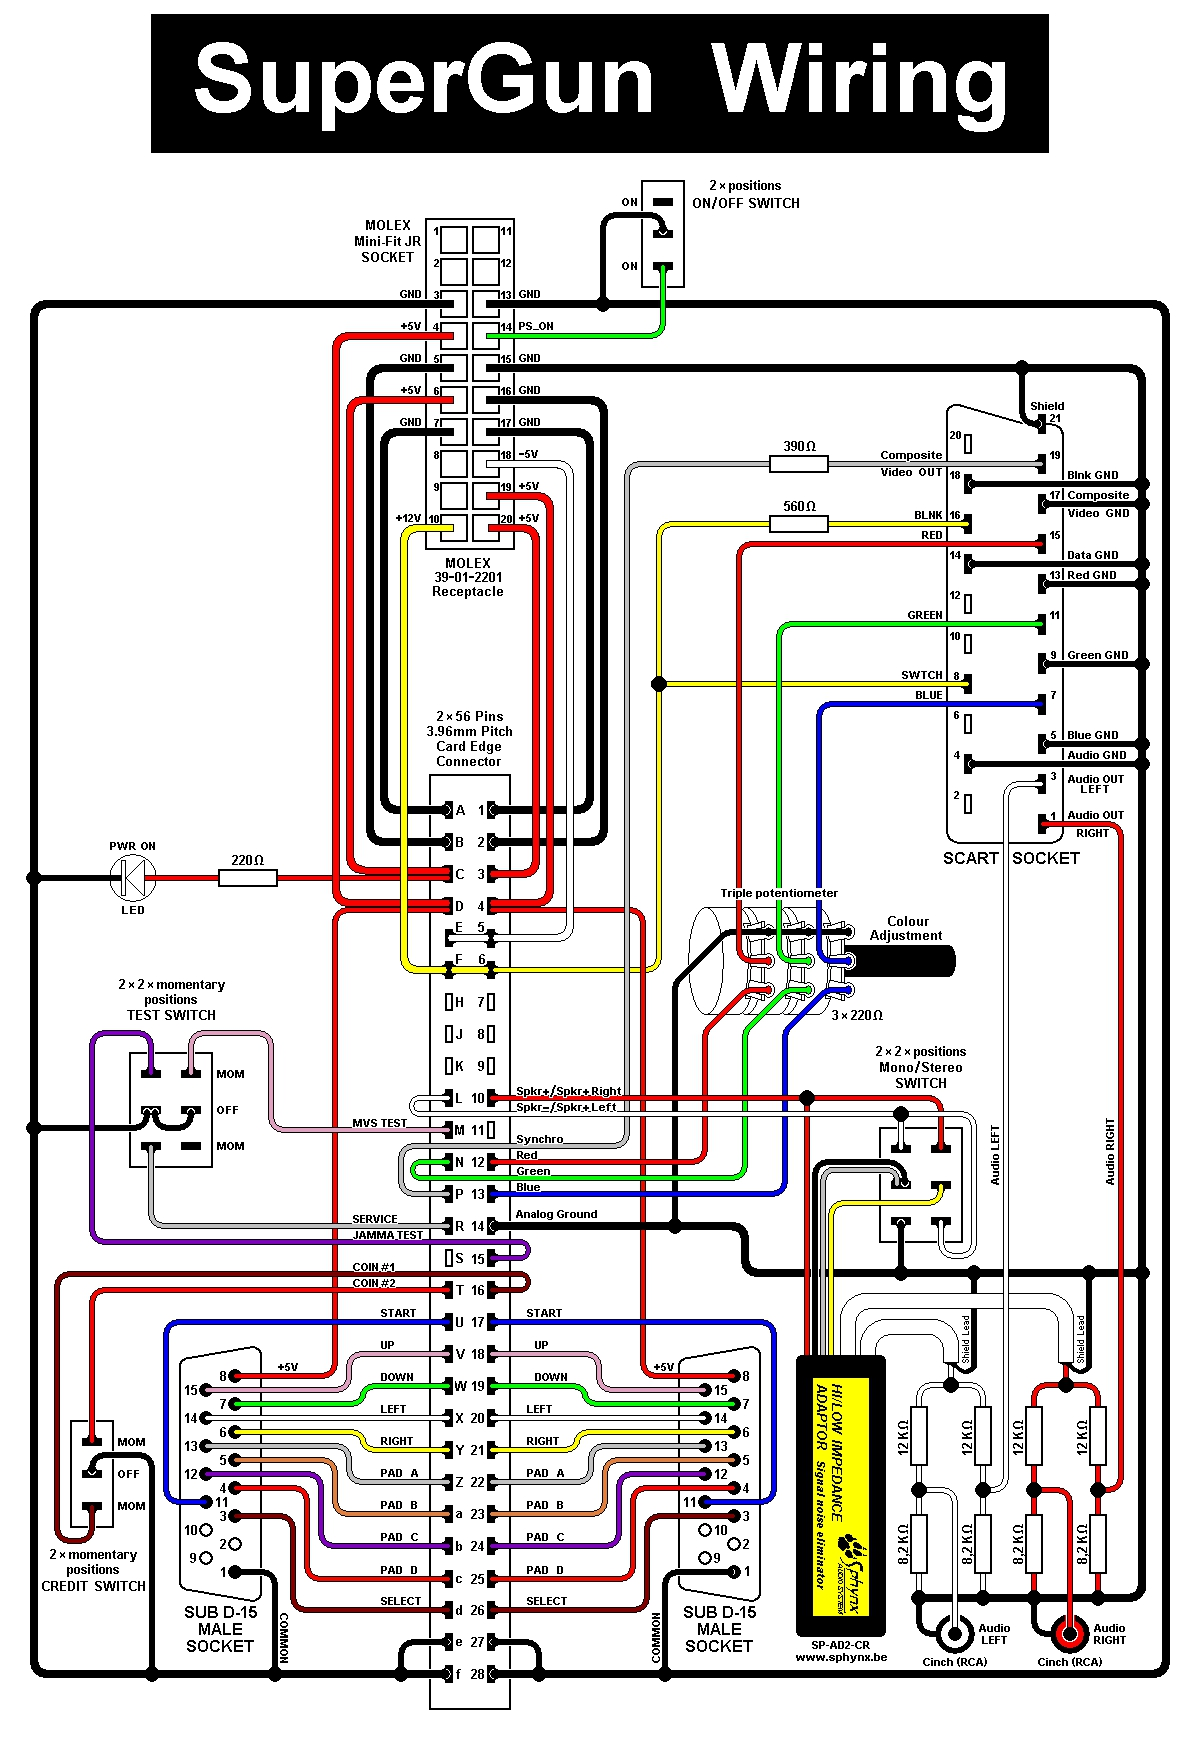 SuperGun jamma supergun 8bitplus jamma harness wiring diagram at crackthecode.co